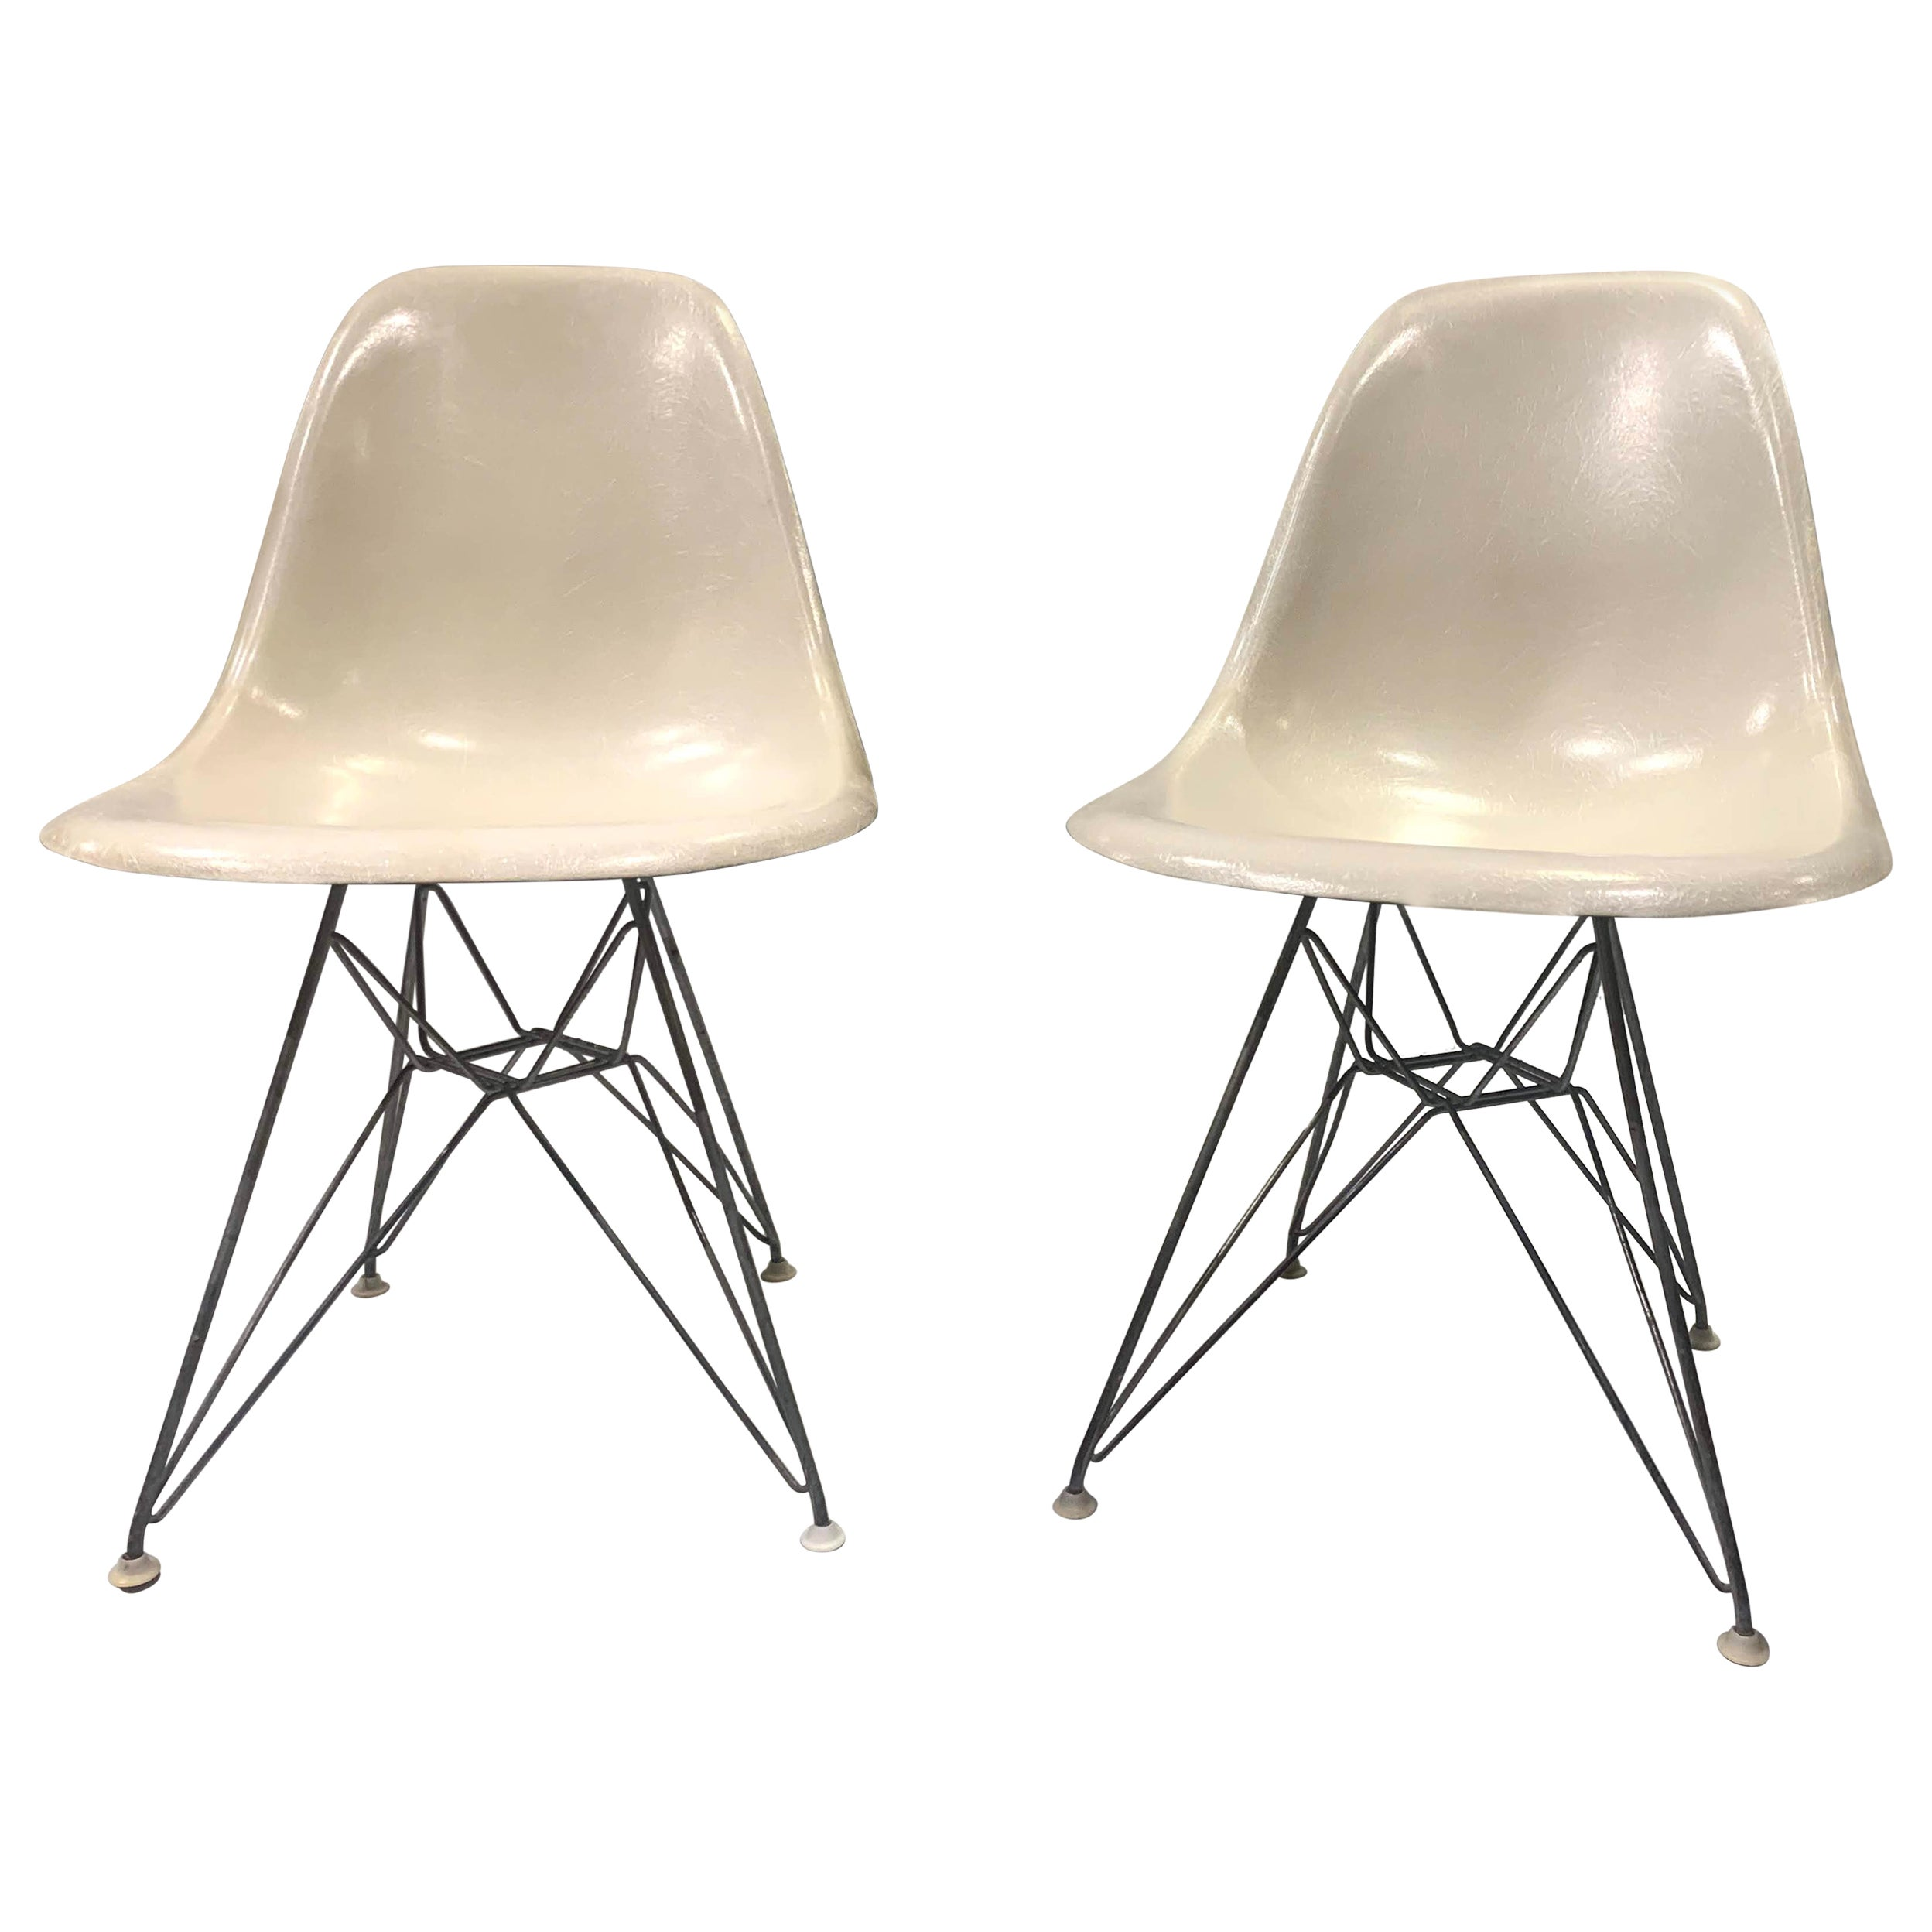 Pair of Midcentury Eames Fiberglass Eiffel Tower Shell Chairs for Herman Miller